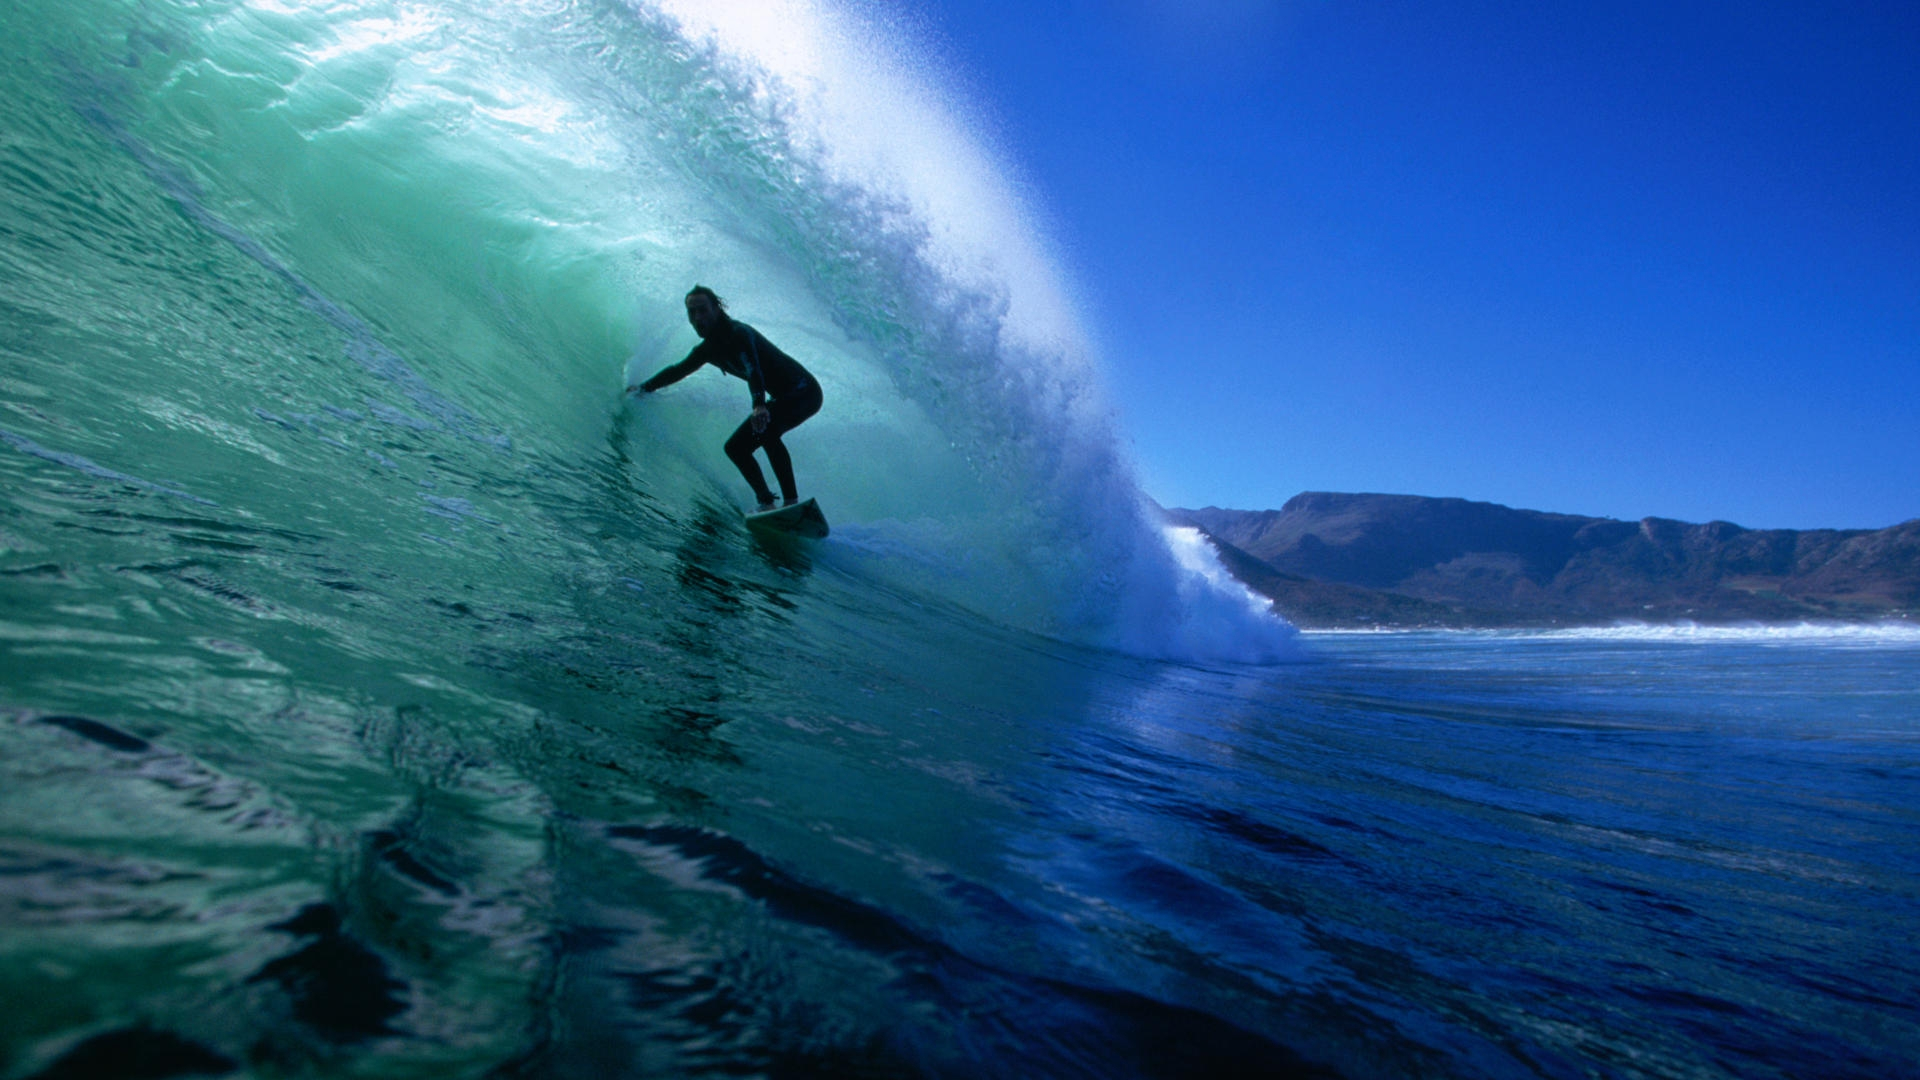 Surfer photo wallpaper on the crest of a wave